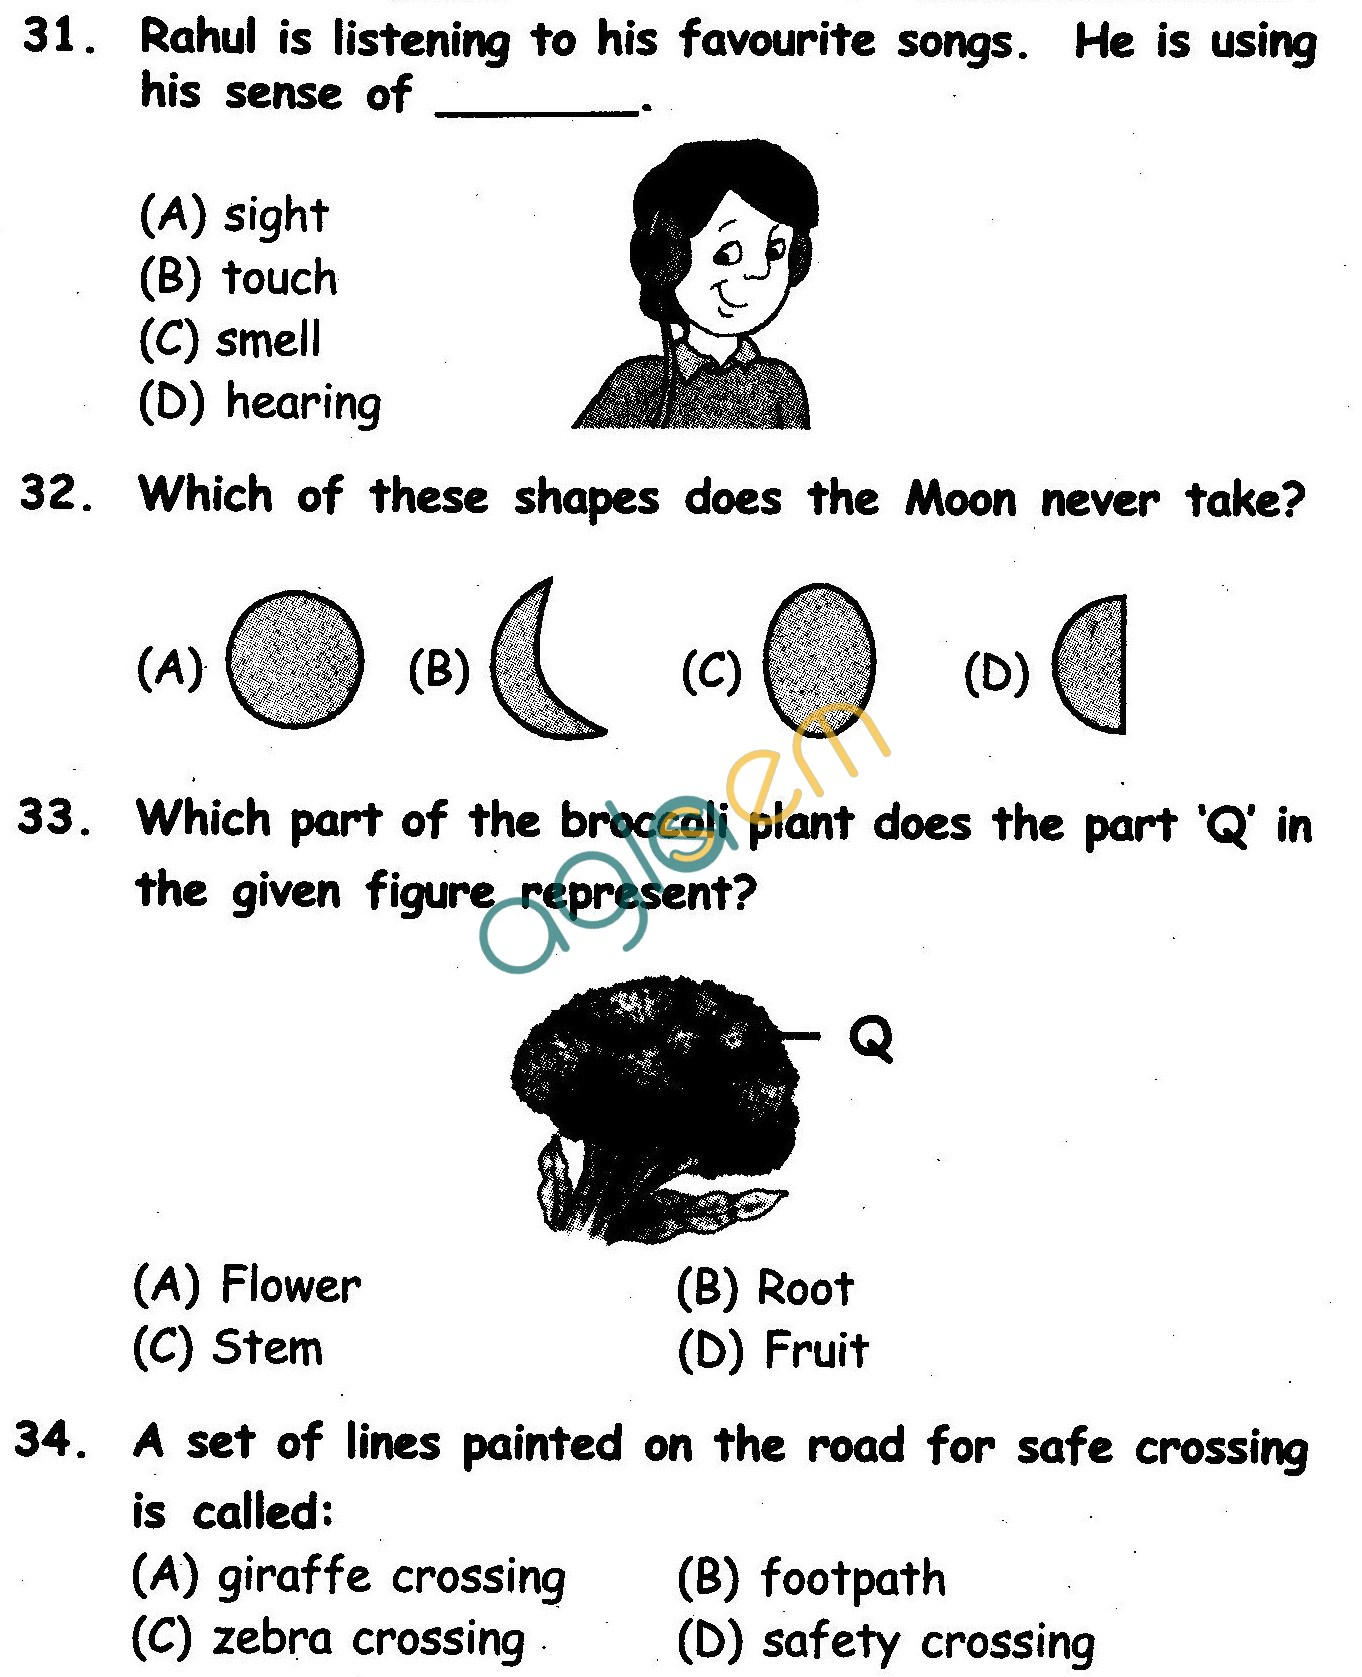 NSTSE 2010 Solved Question Paper for Class II